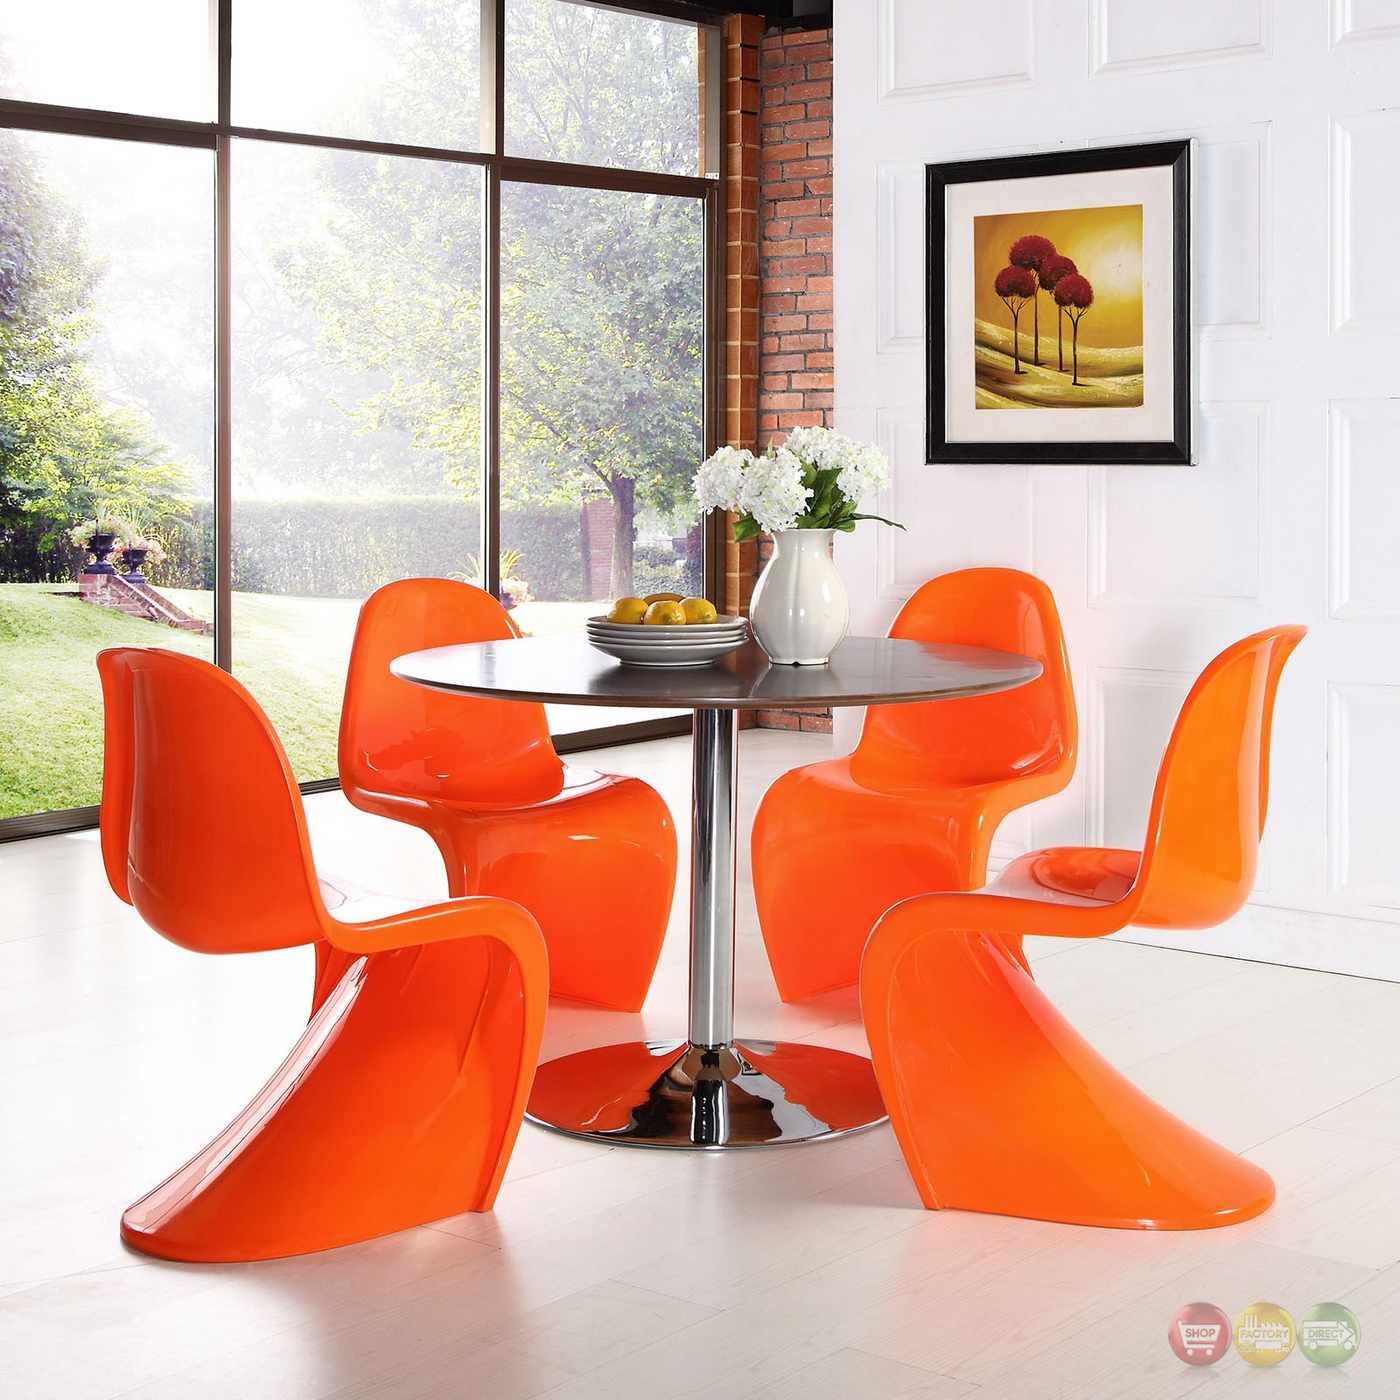 orange side chair railing ideas slither modernistic molded plastic quots quot shaped dining